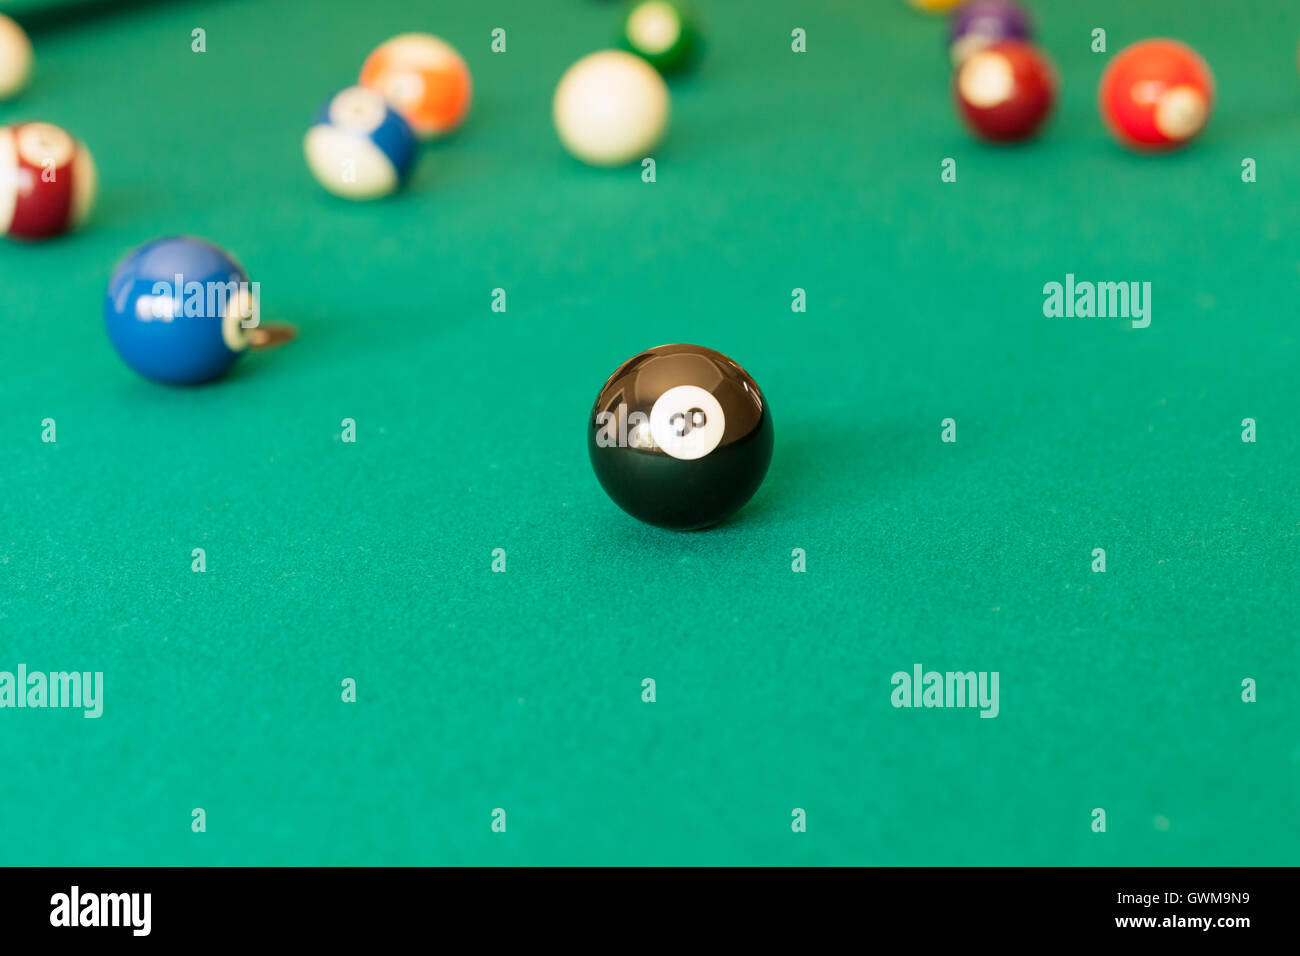 Billiard balls - Stock Image